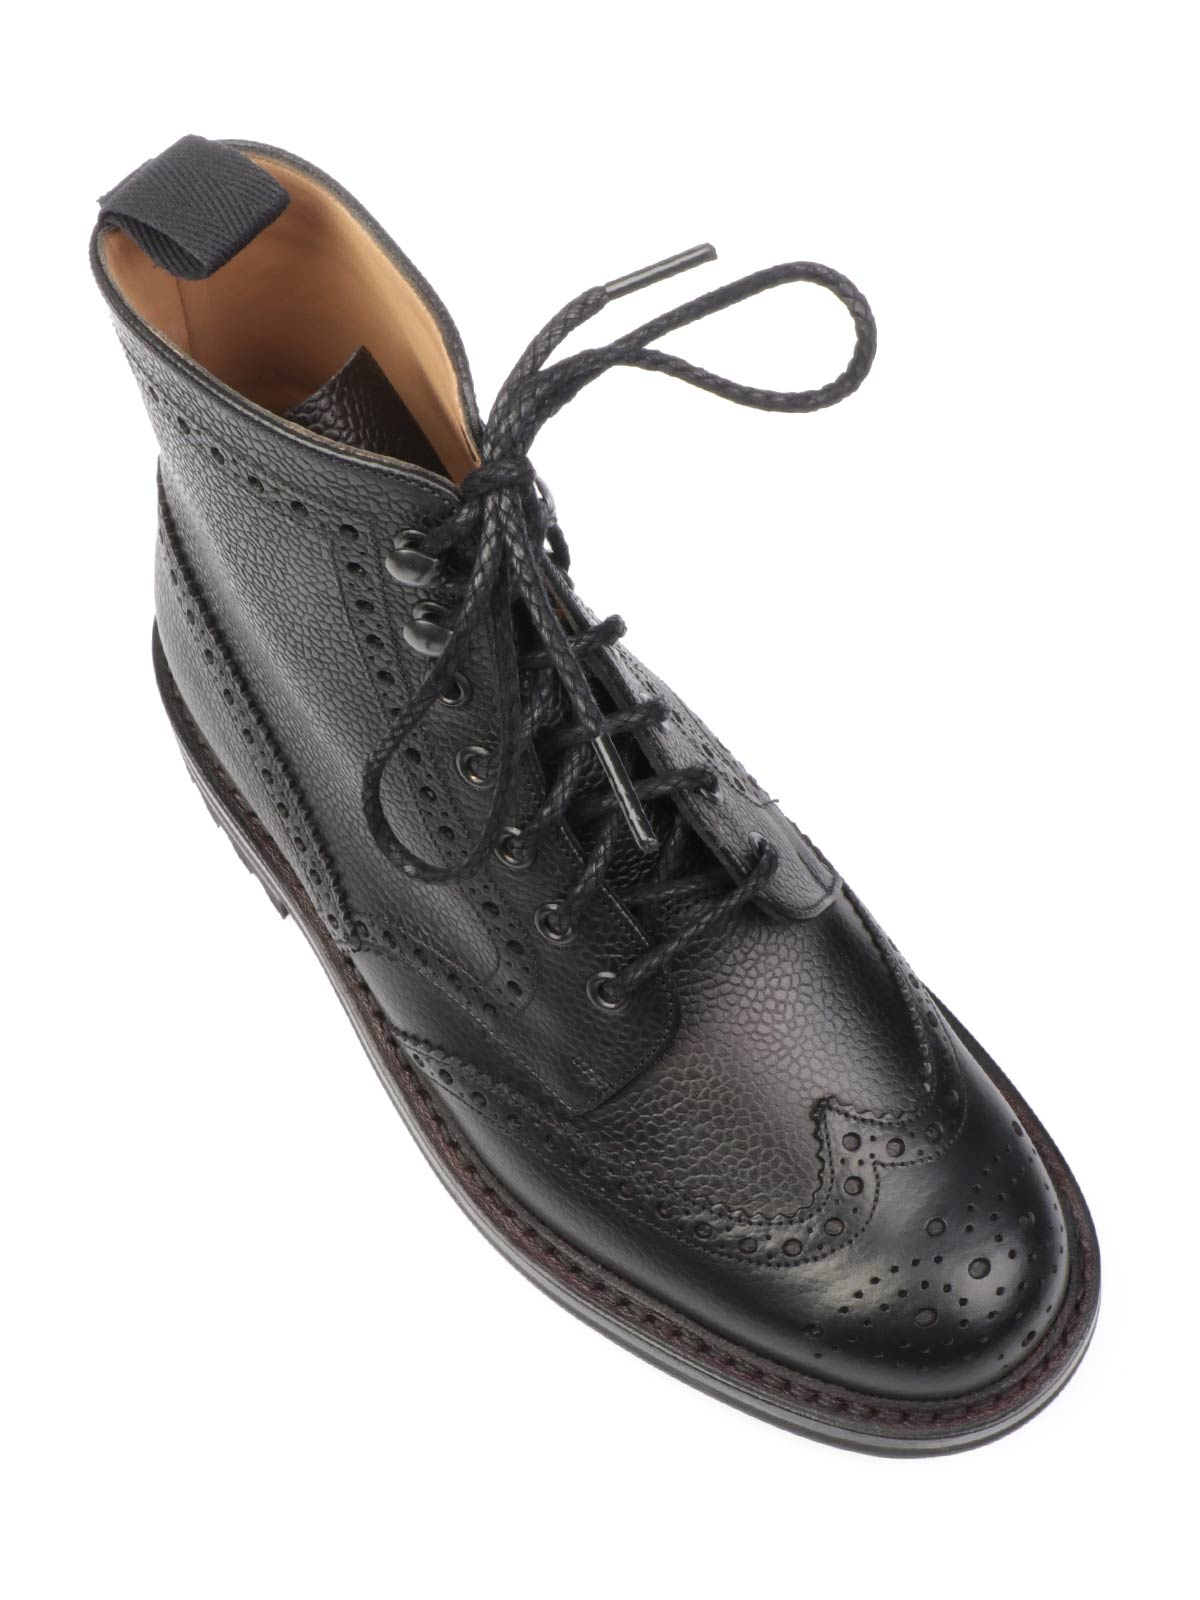 Immagine di CHURCH'S | Stivale Brogue Uomo Mac Farlane